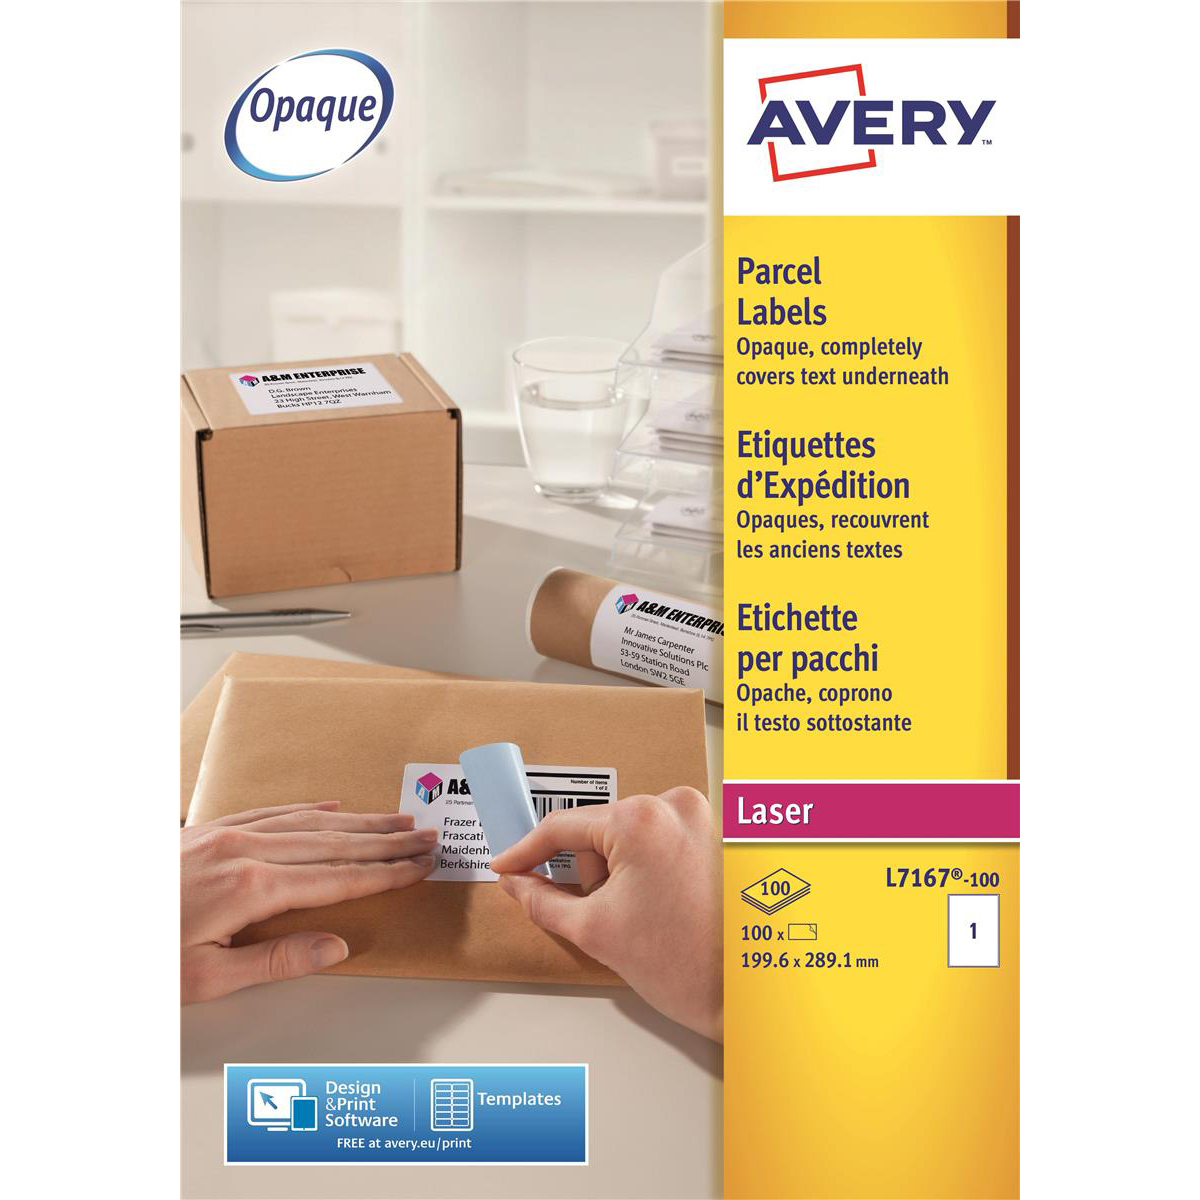 Avery Parcel Labels Laser Jam-free 1 per Sheet 199.6x289.1mm Opaque White Ref L7167-100 100 Labels